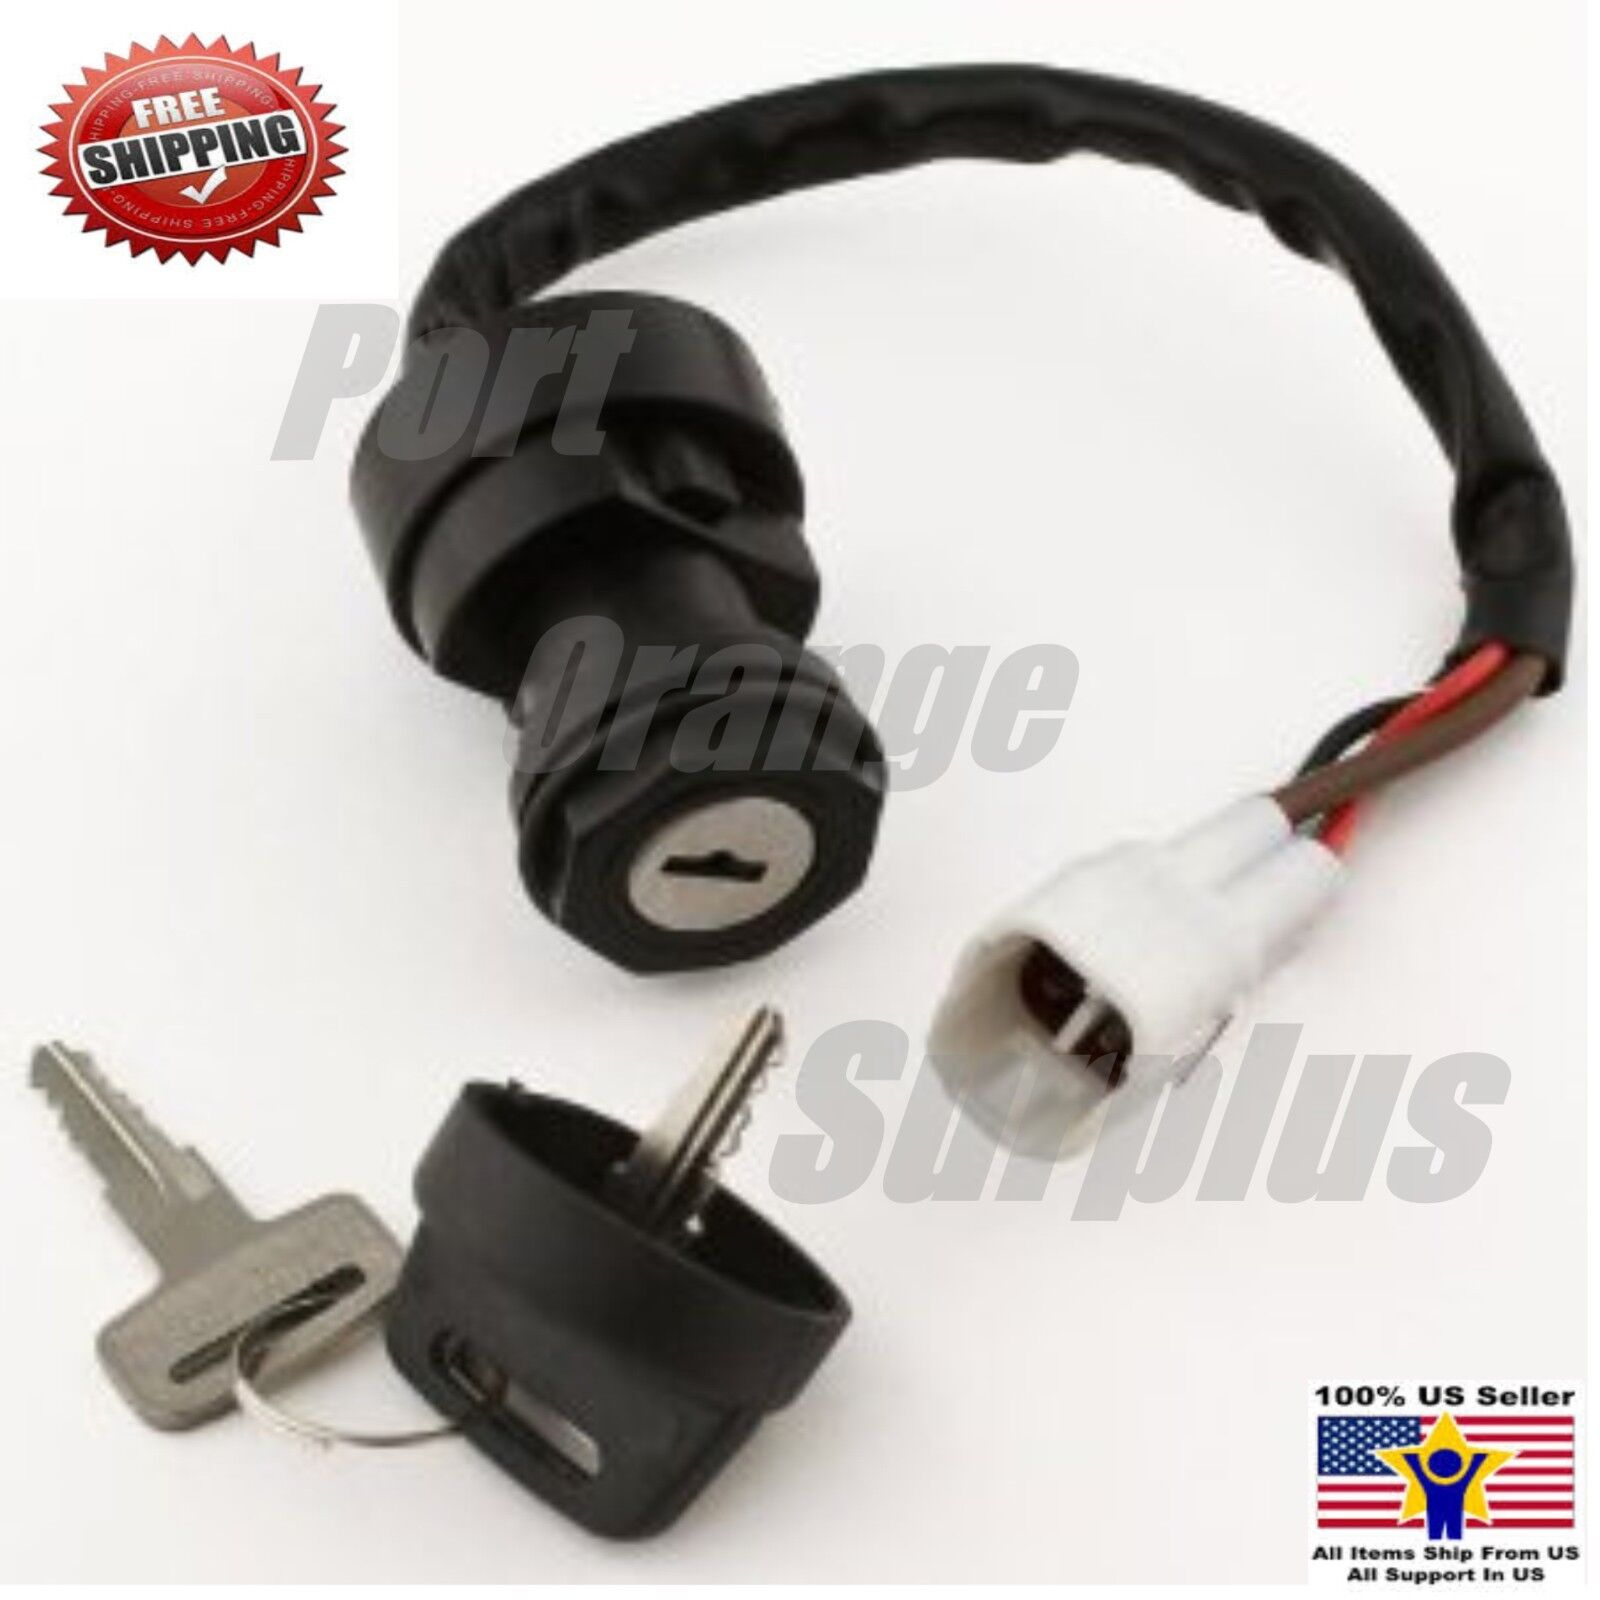 ignition key switch fits yamaha grizzly 600 yfm600 1999. Black Bedroom Furniture Sets. Home Design Ideas